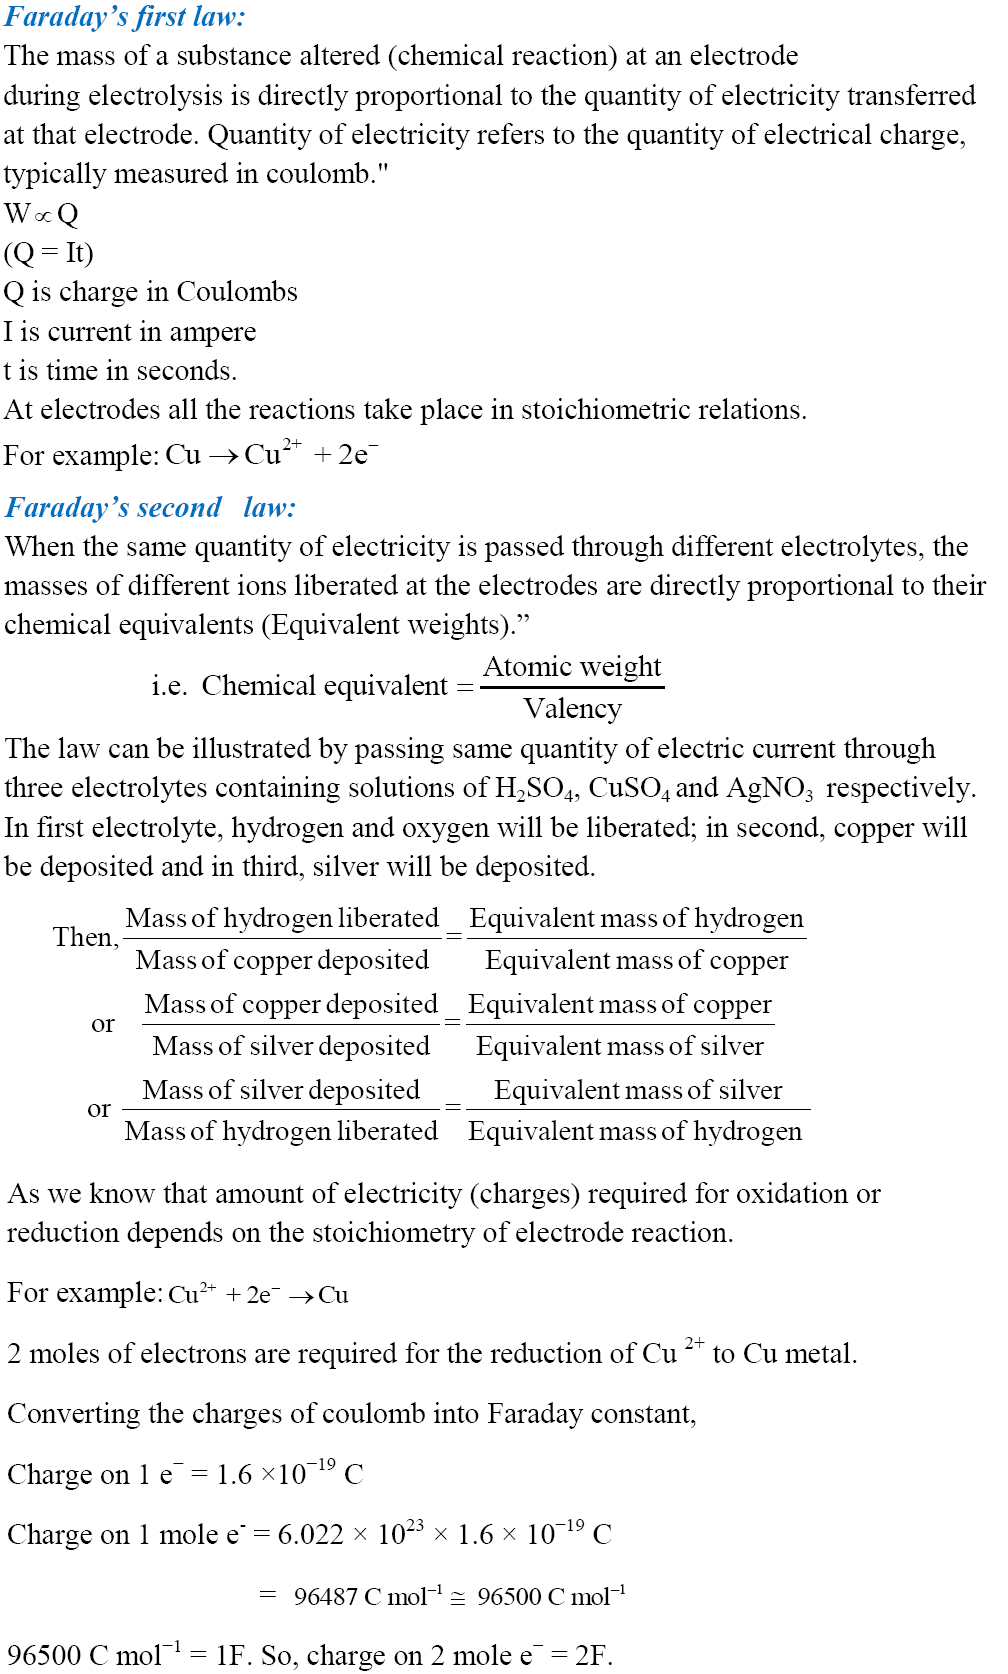 cbse class 12 chemistry notes and Free pdf download of class 12 chemistry revision notes and short key-notes to  score more marks in exams, prepared by expert chemistry teachers from the.